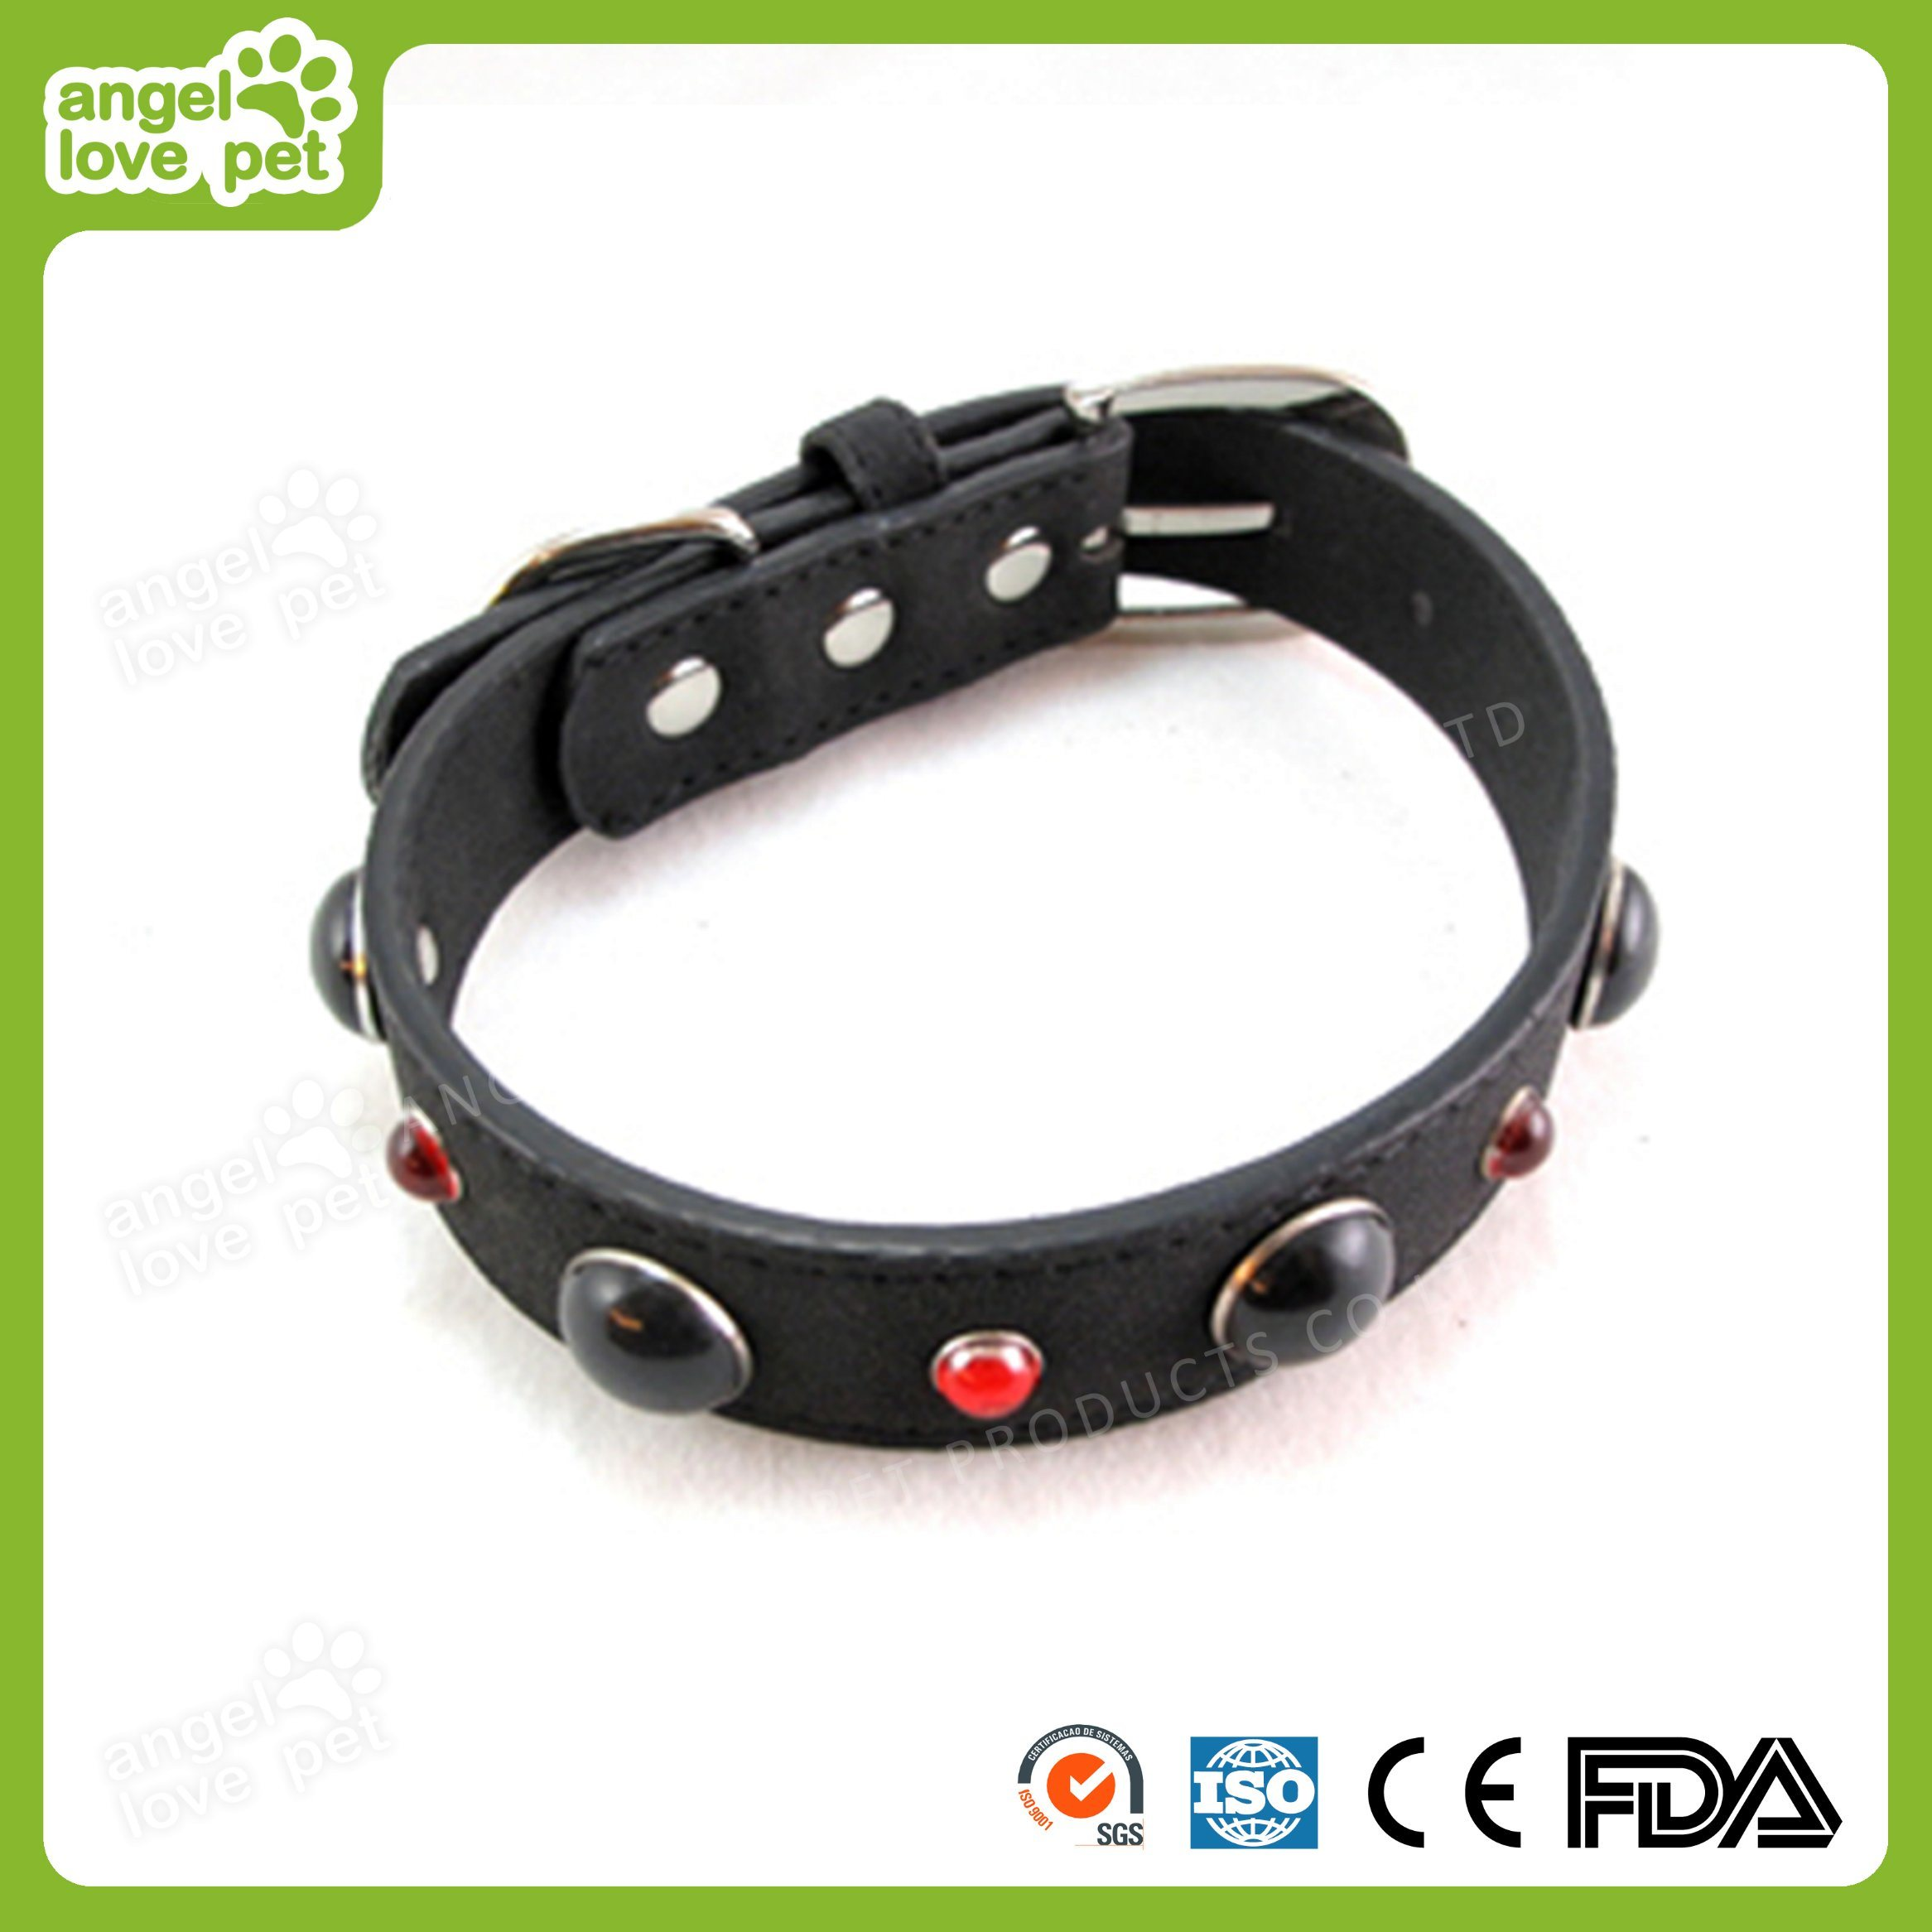 High Quality Leather with Samll Decorative Jewelry Dog Collar, Pet Product